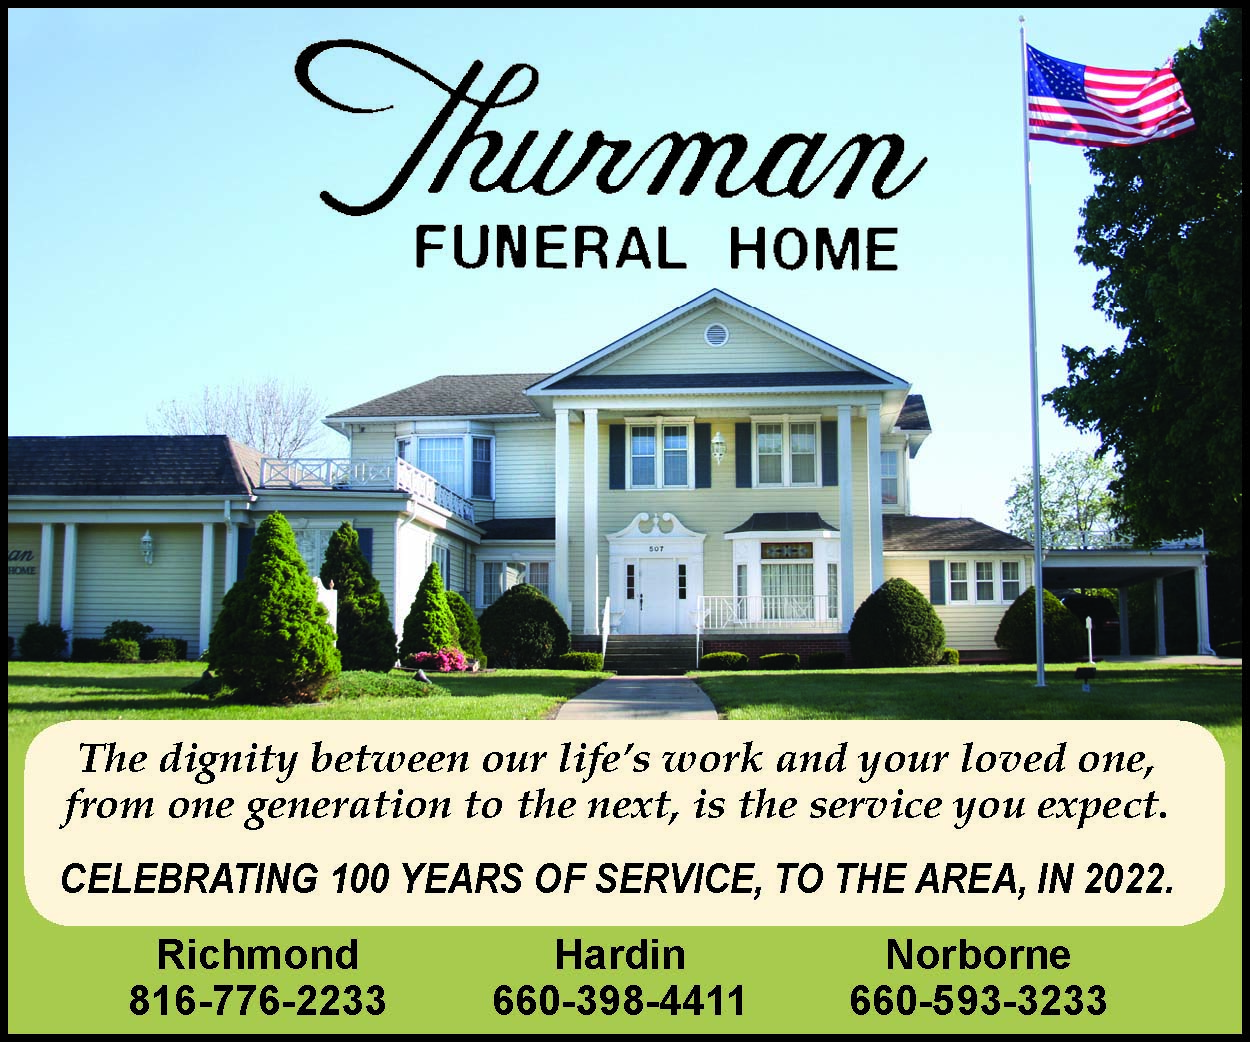 Thurman Funeral Home